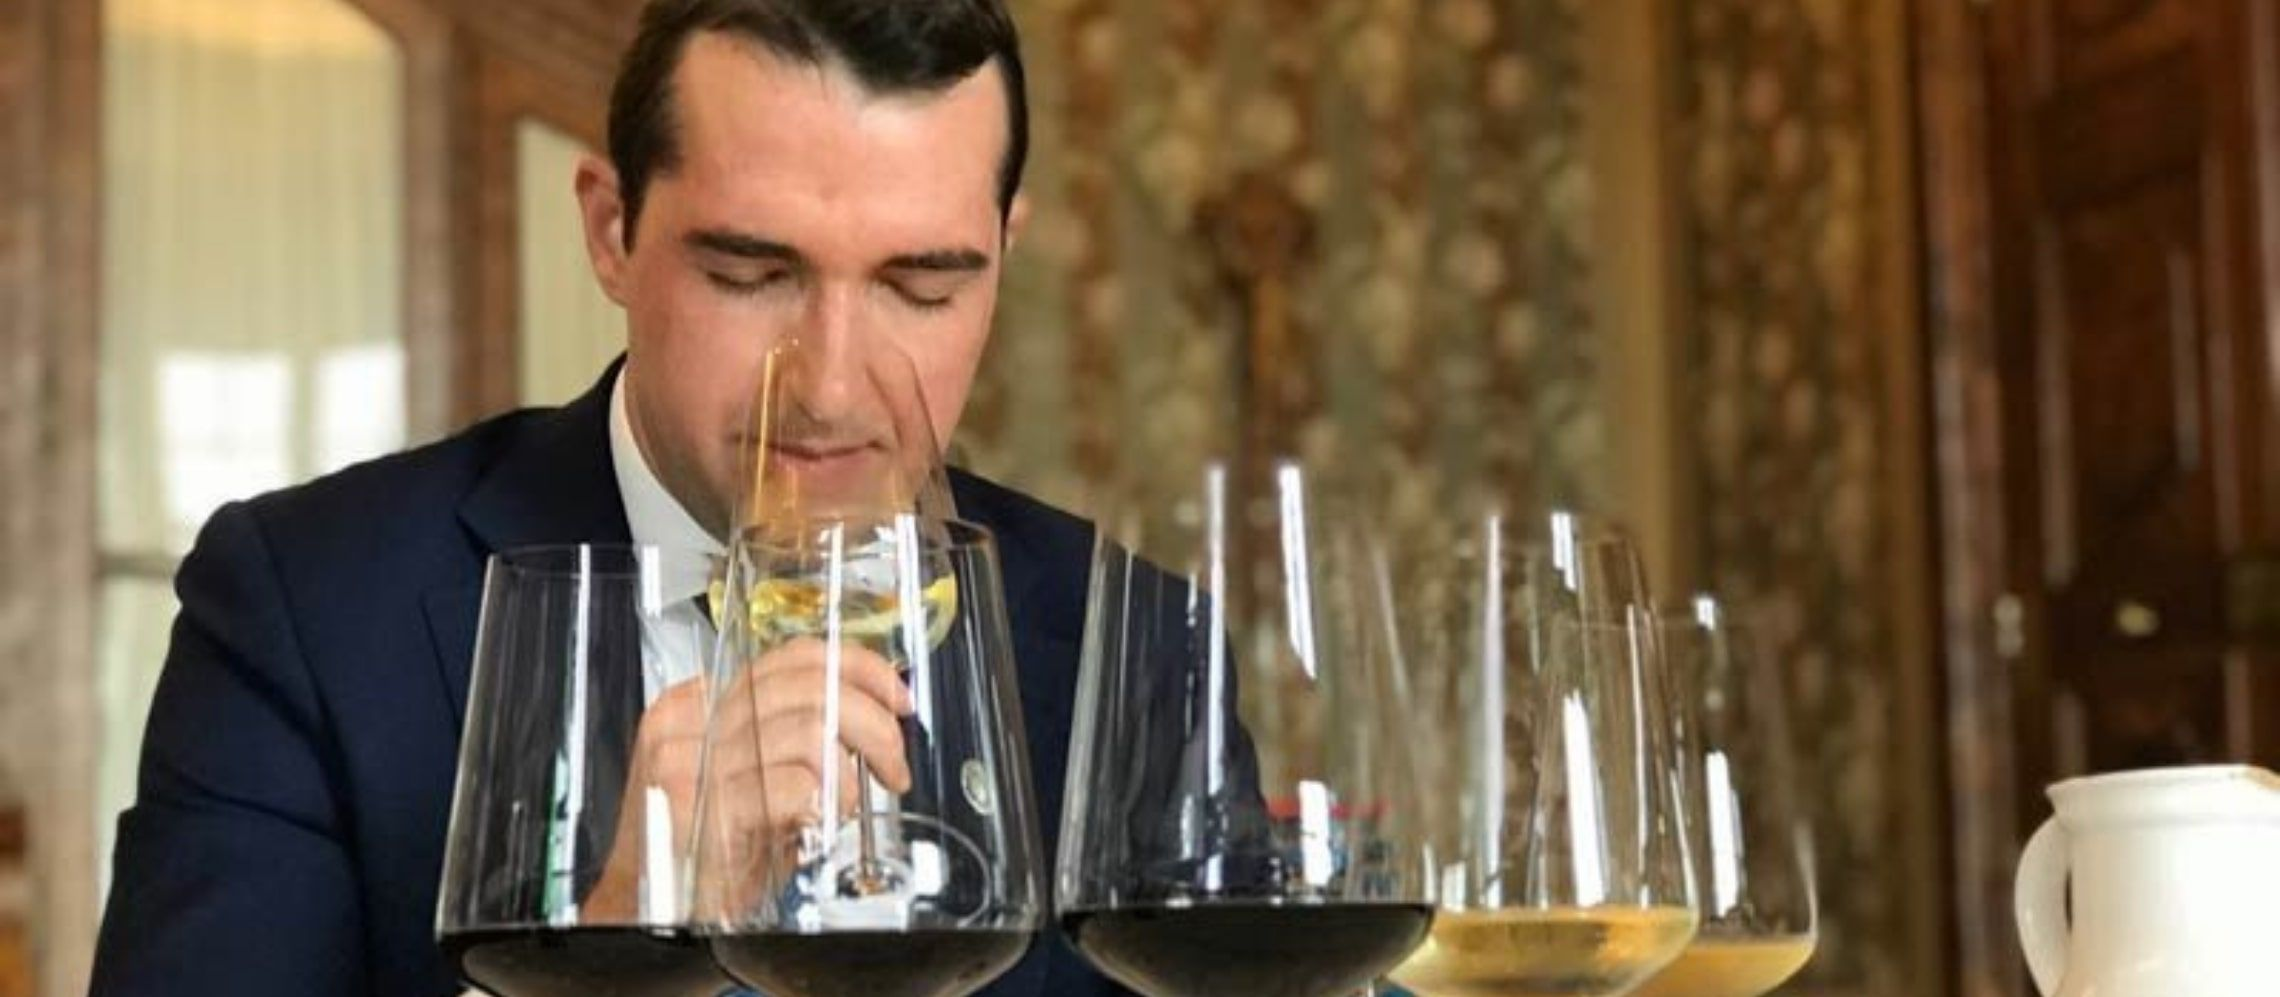 Photo for: What Makes A Great Sommelier: Tips From The Best